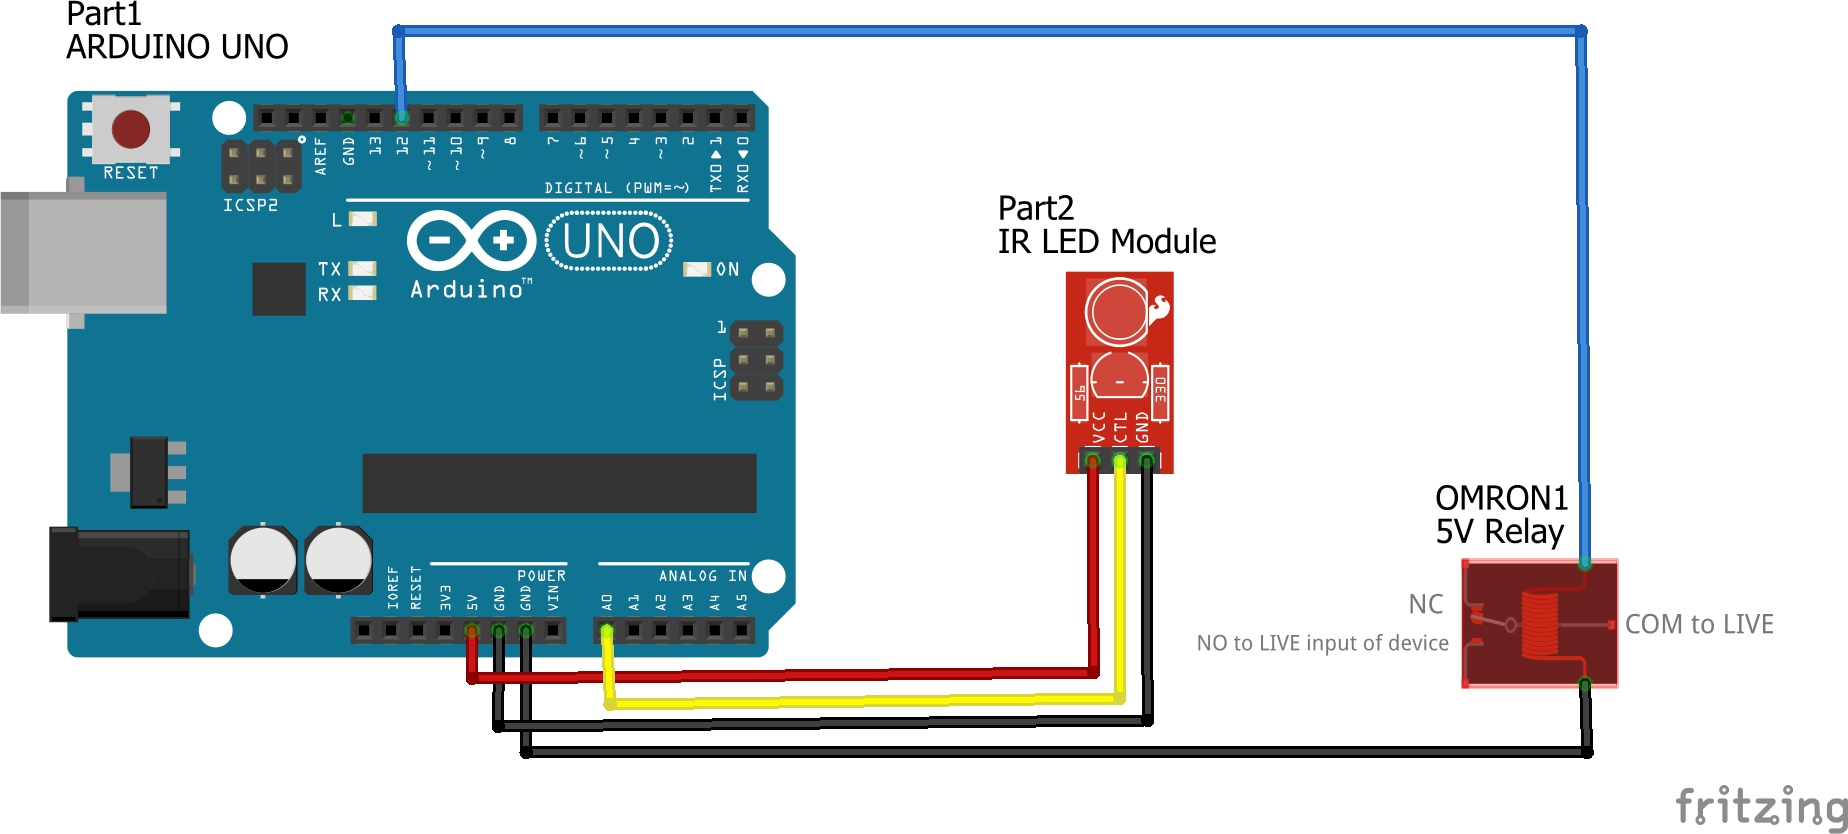 Picture of Add the Device With the Relay: